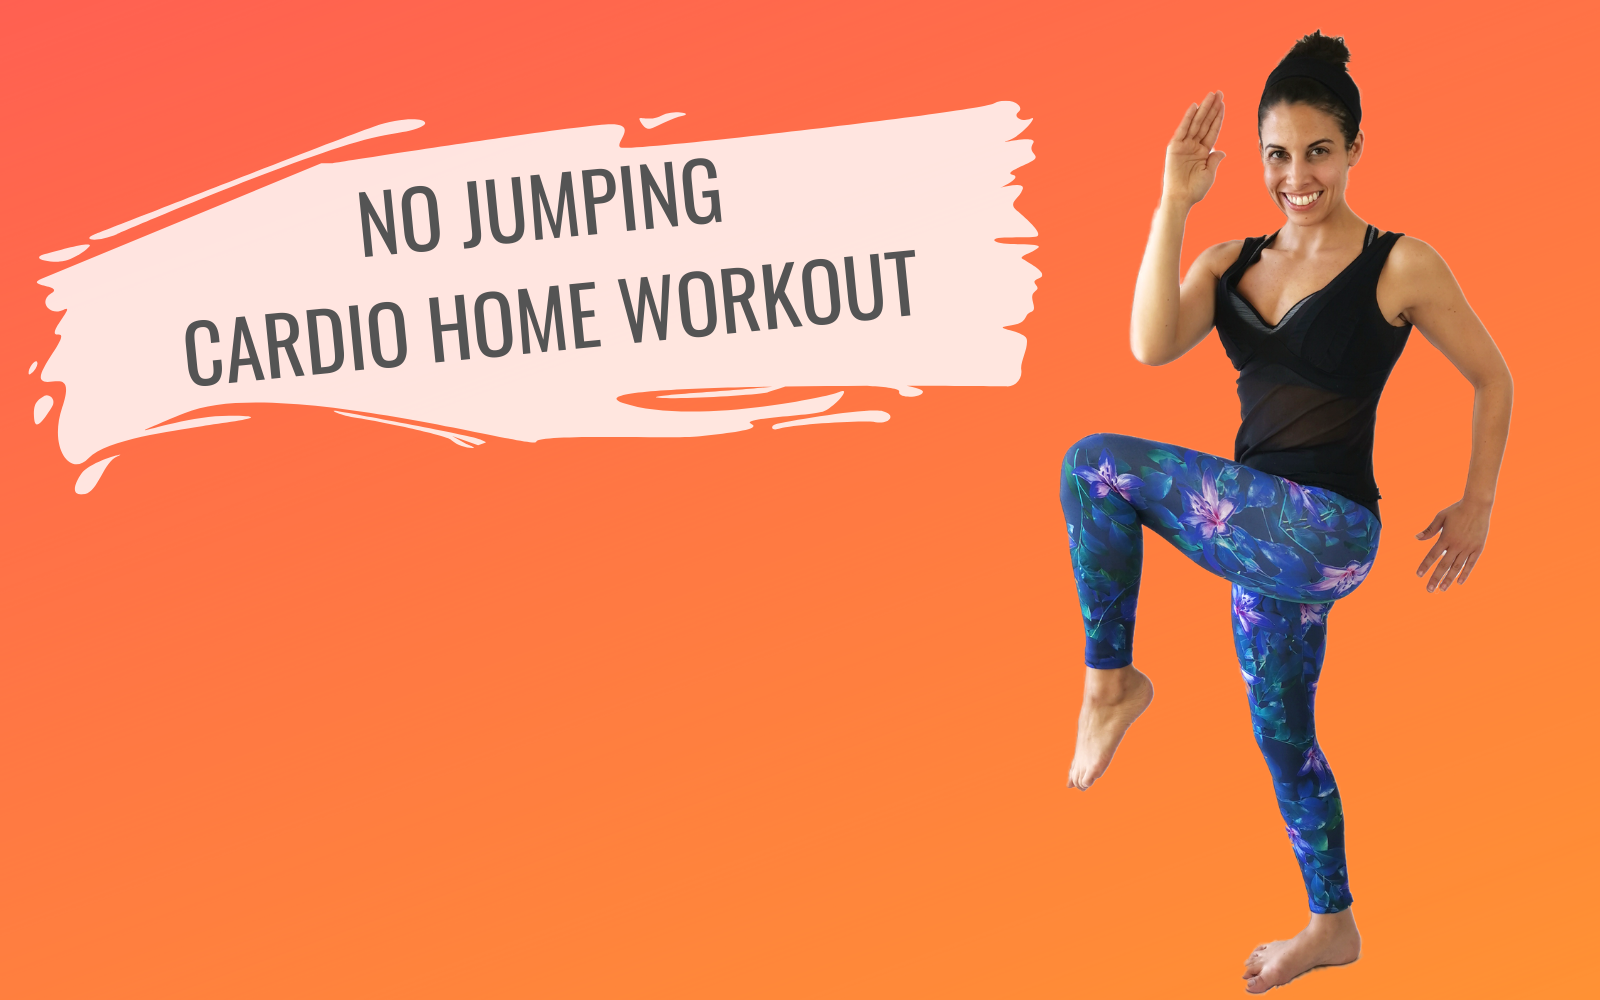 Apartment Friendly Cardio | Cardio Workout At Home - No Jumping